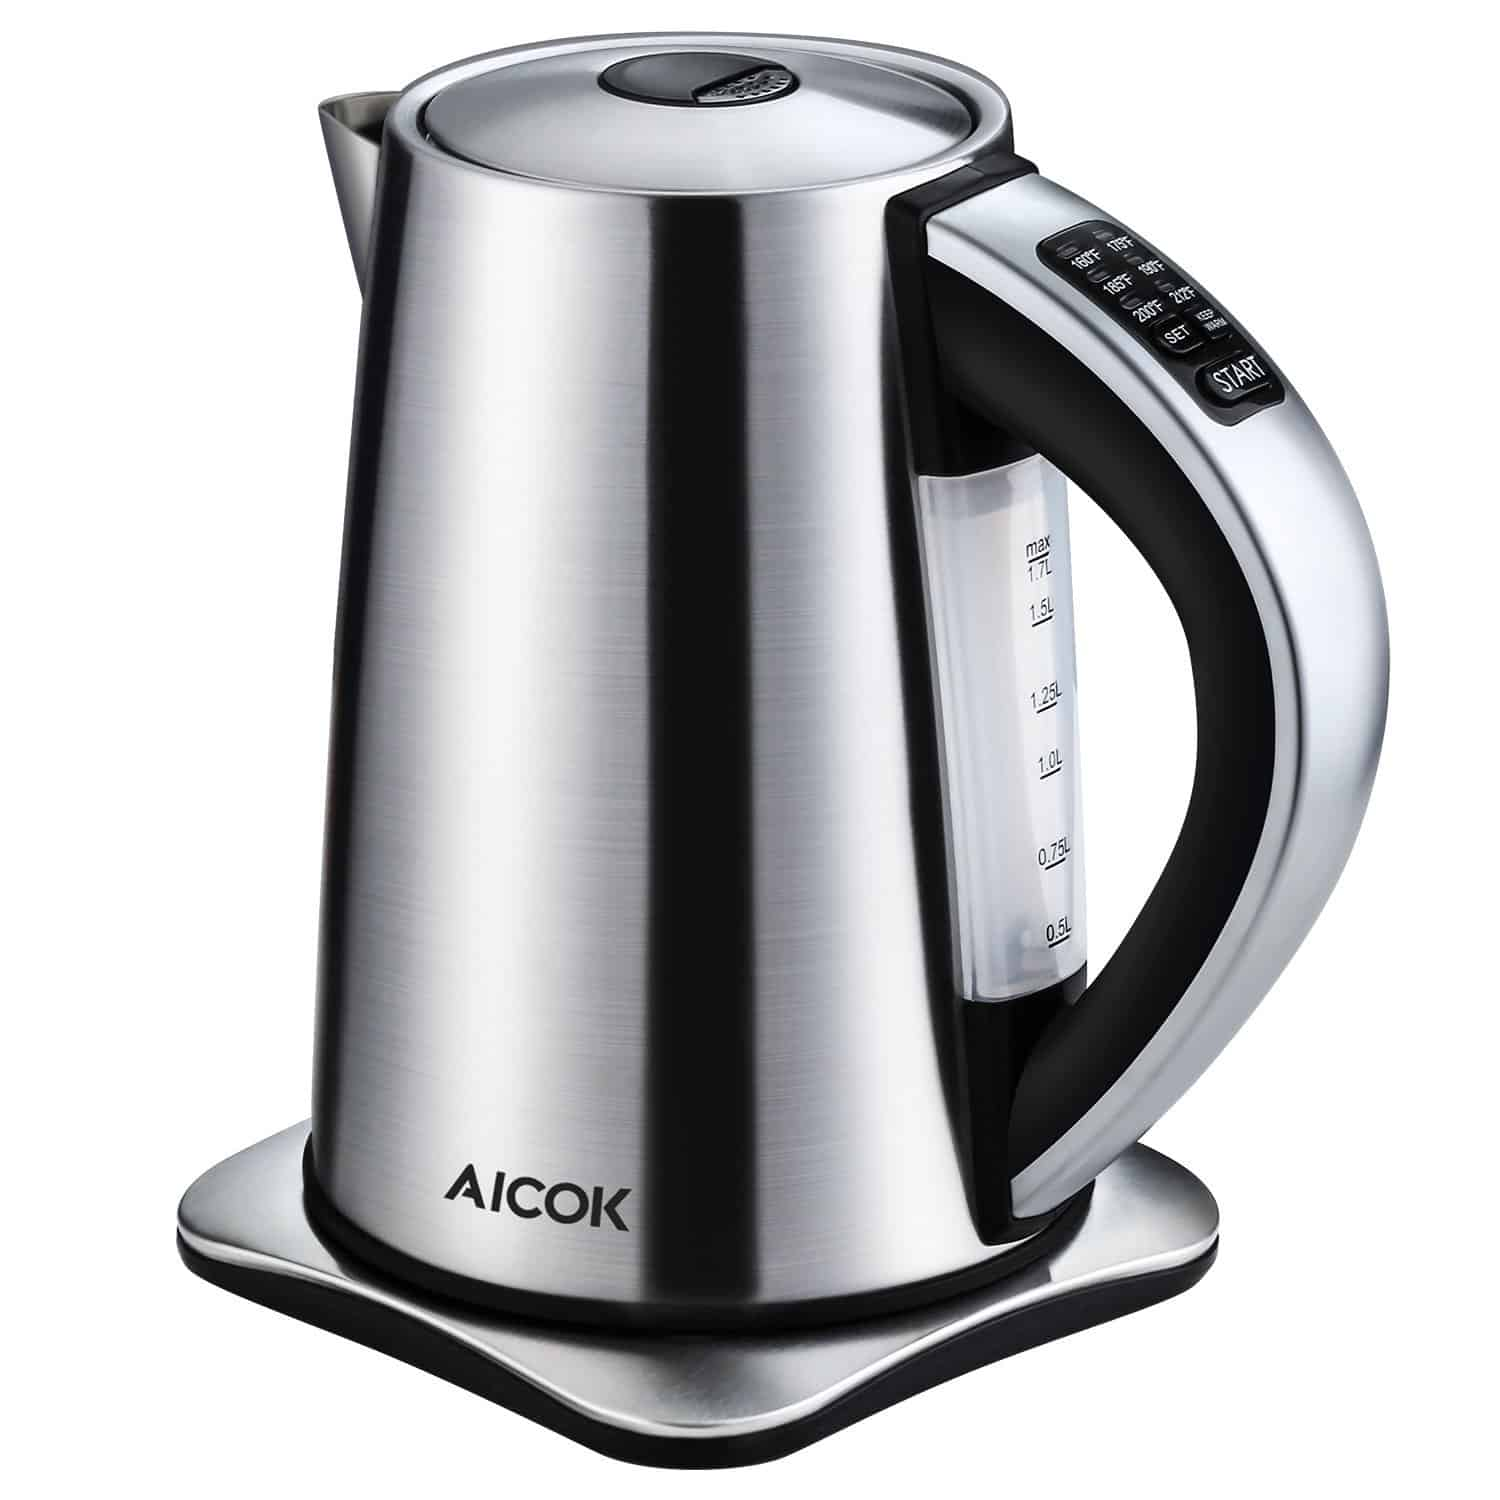 Aicok Electric Kettle Precise Temperature Control Hot Water Kettle Stainless Steel Tea Kettle